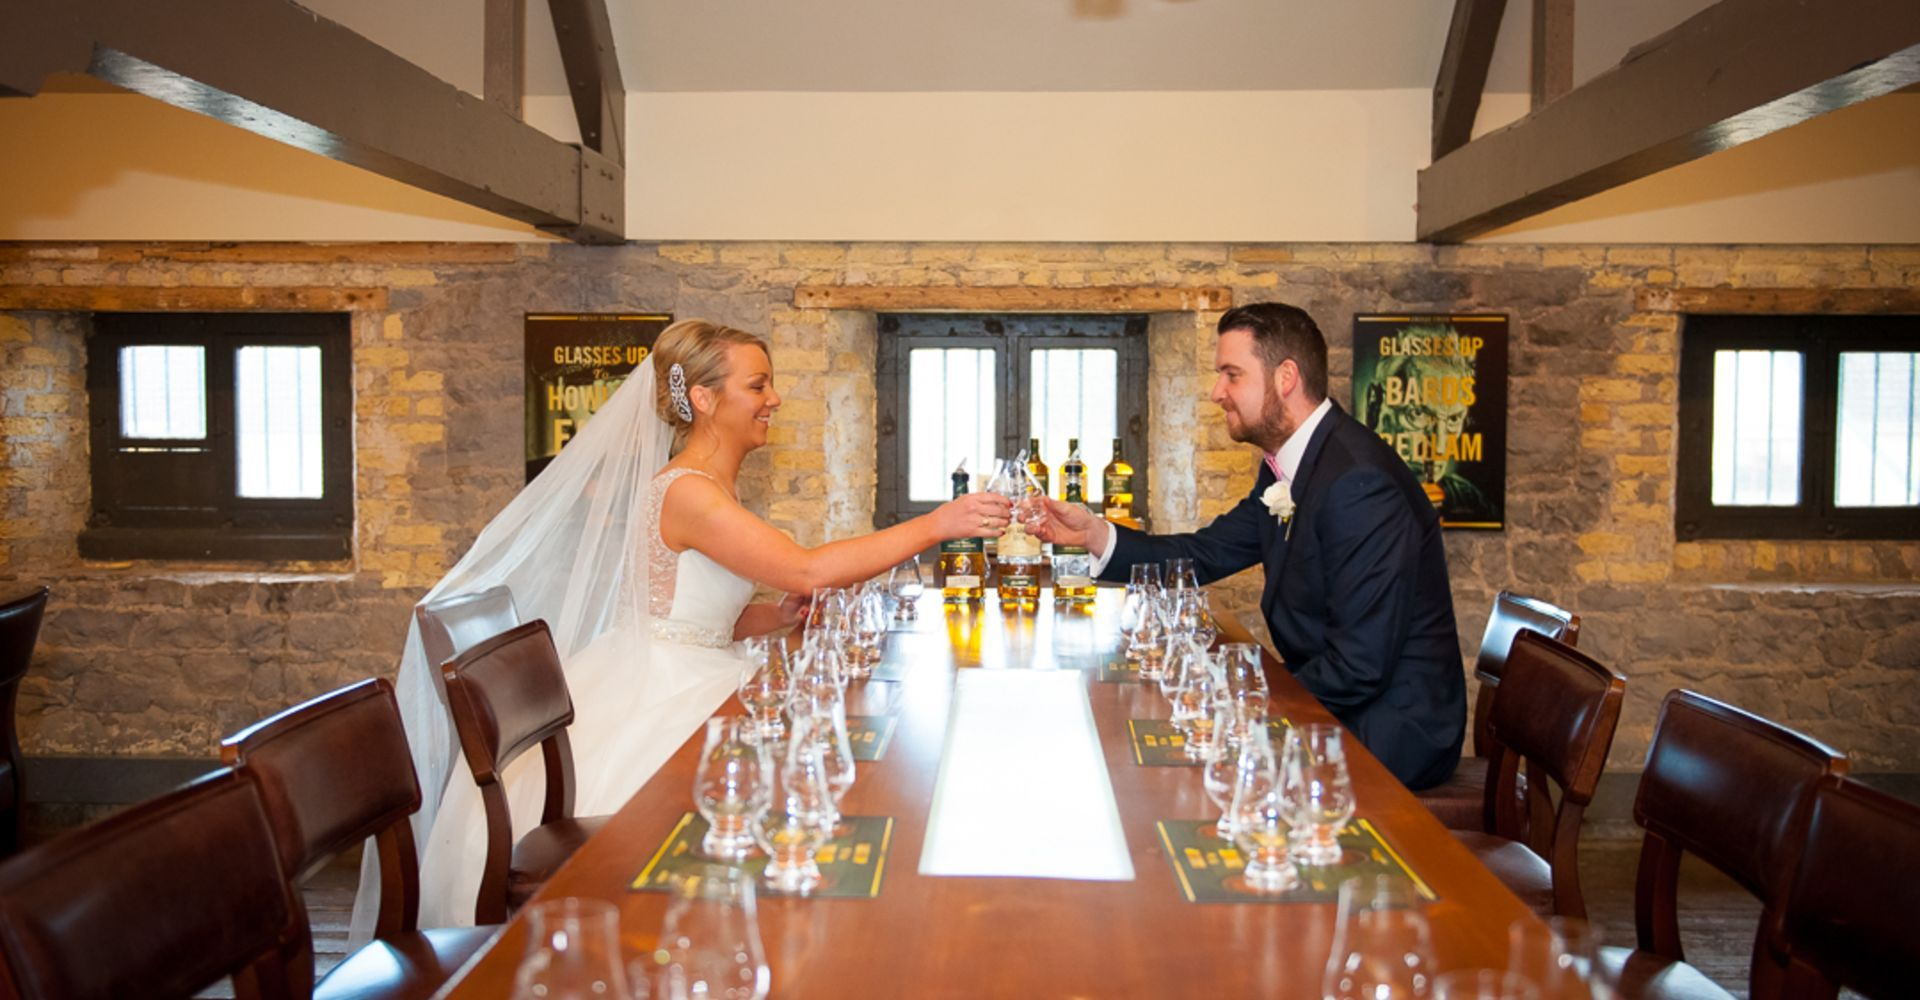 bridge_house_hotel_offaly_weddings_drinks_tullamore_dew